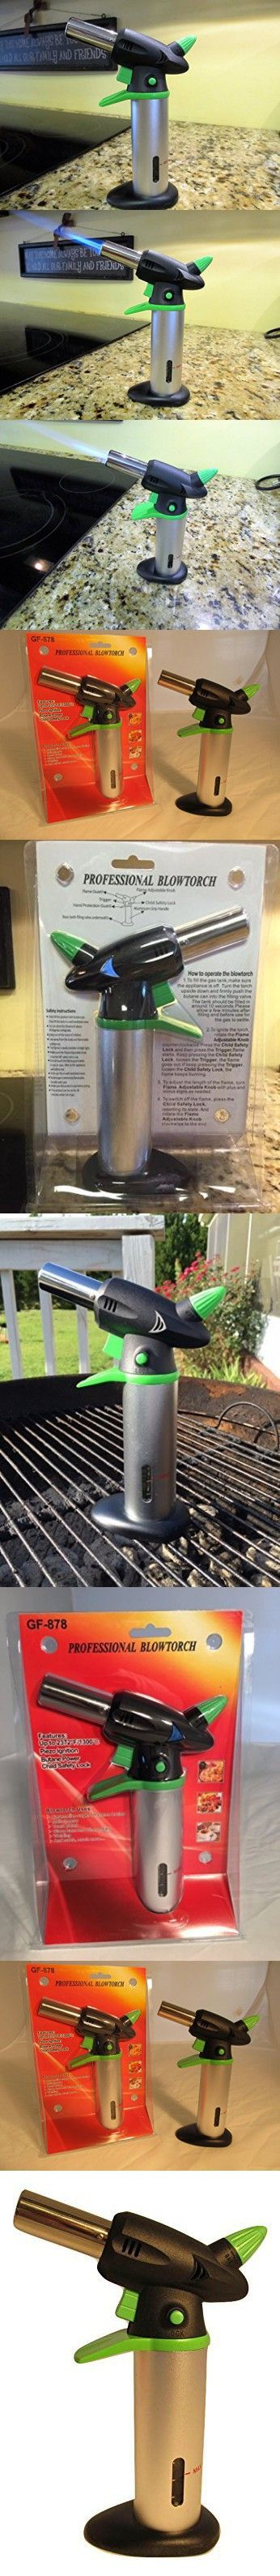 Culinary Blow Torch Lime Green/black Kitchen Tool For Creme Brulee, BBQ,  Welding